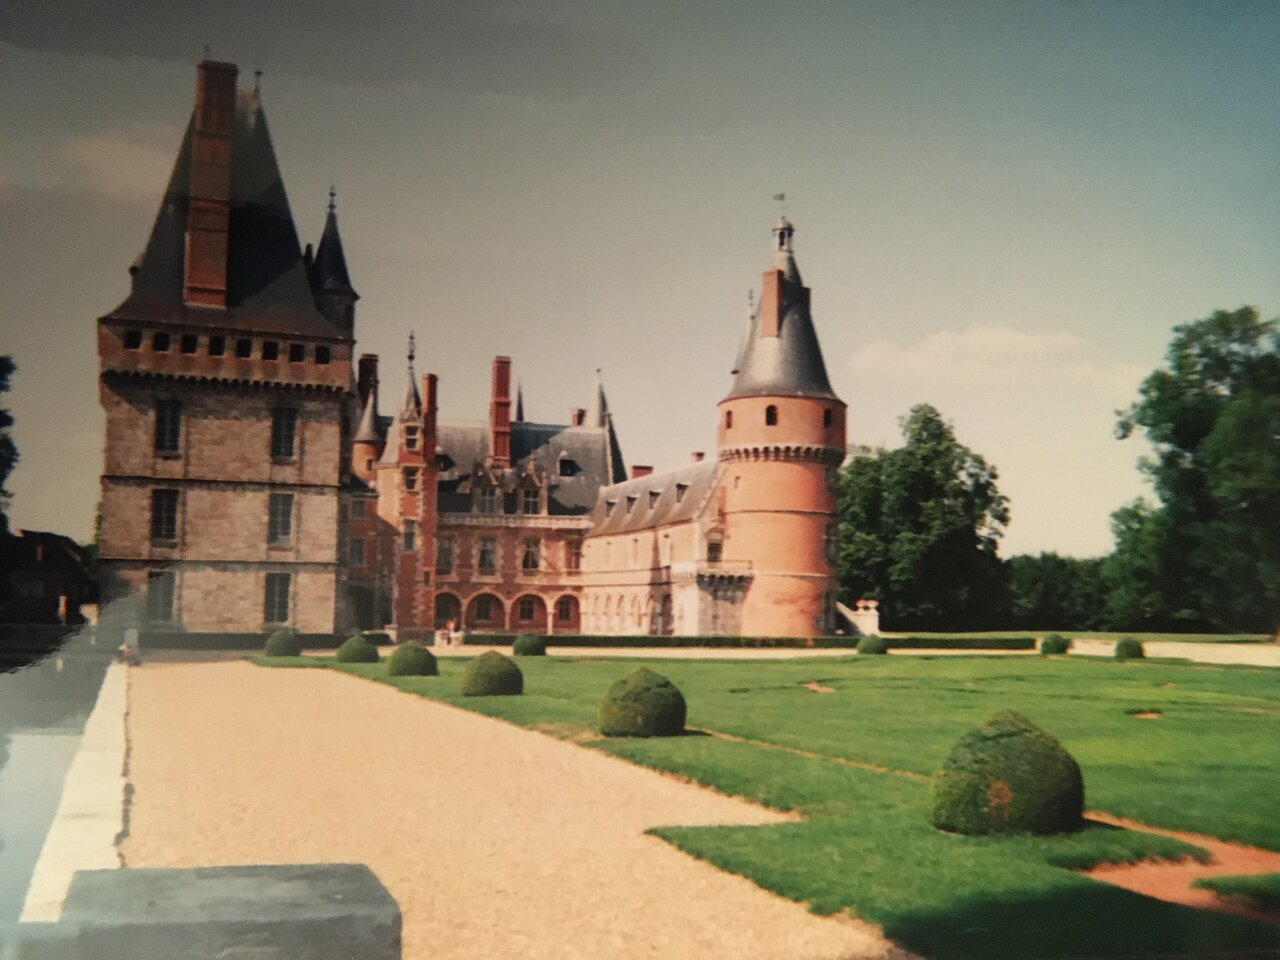 Chateau De Maintenon 2020 All You Need To Know Before You Go With Photos Tripadvisor